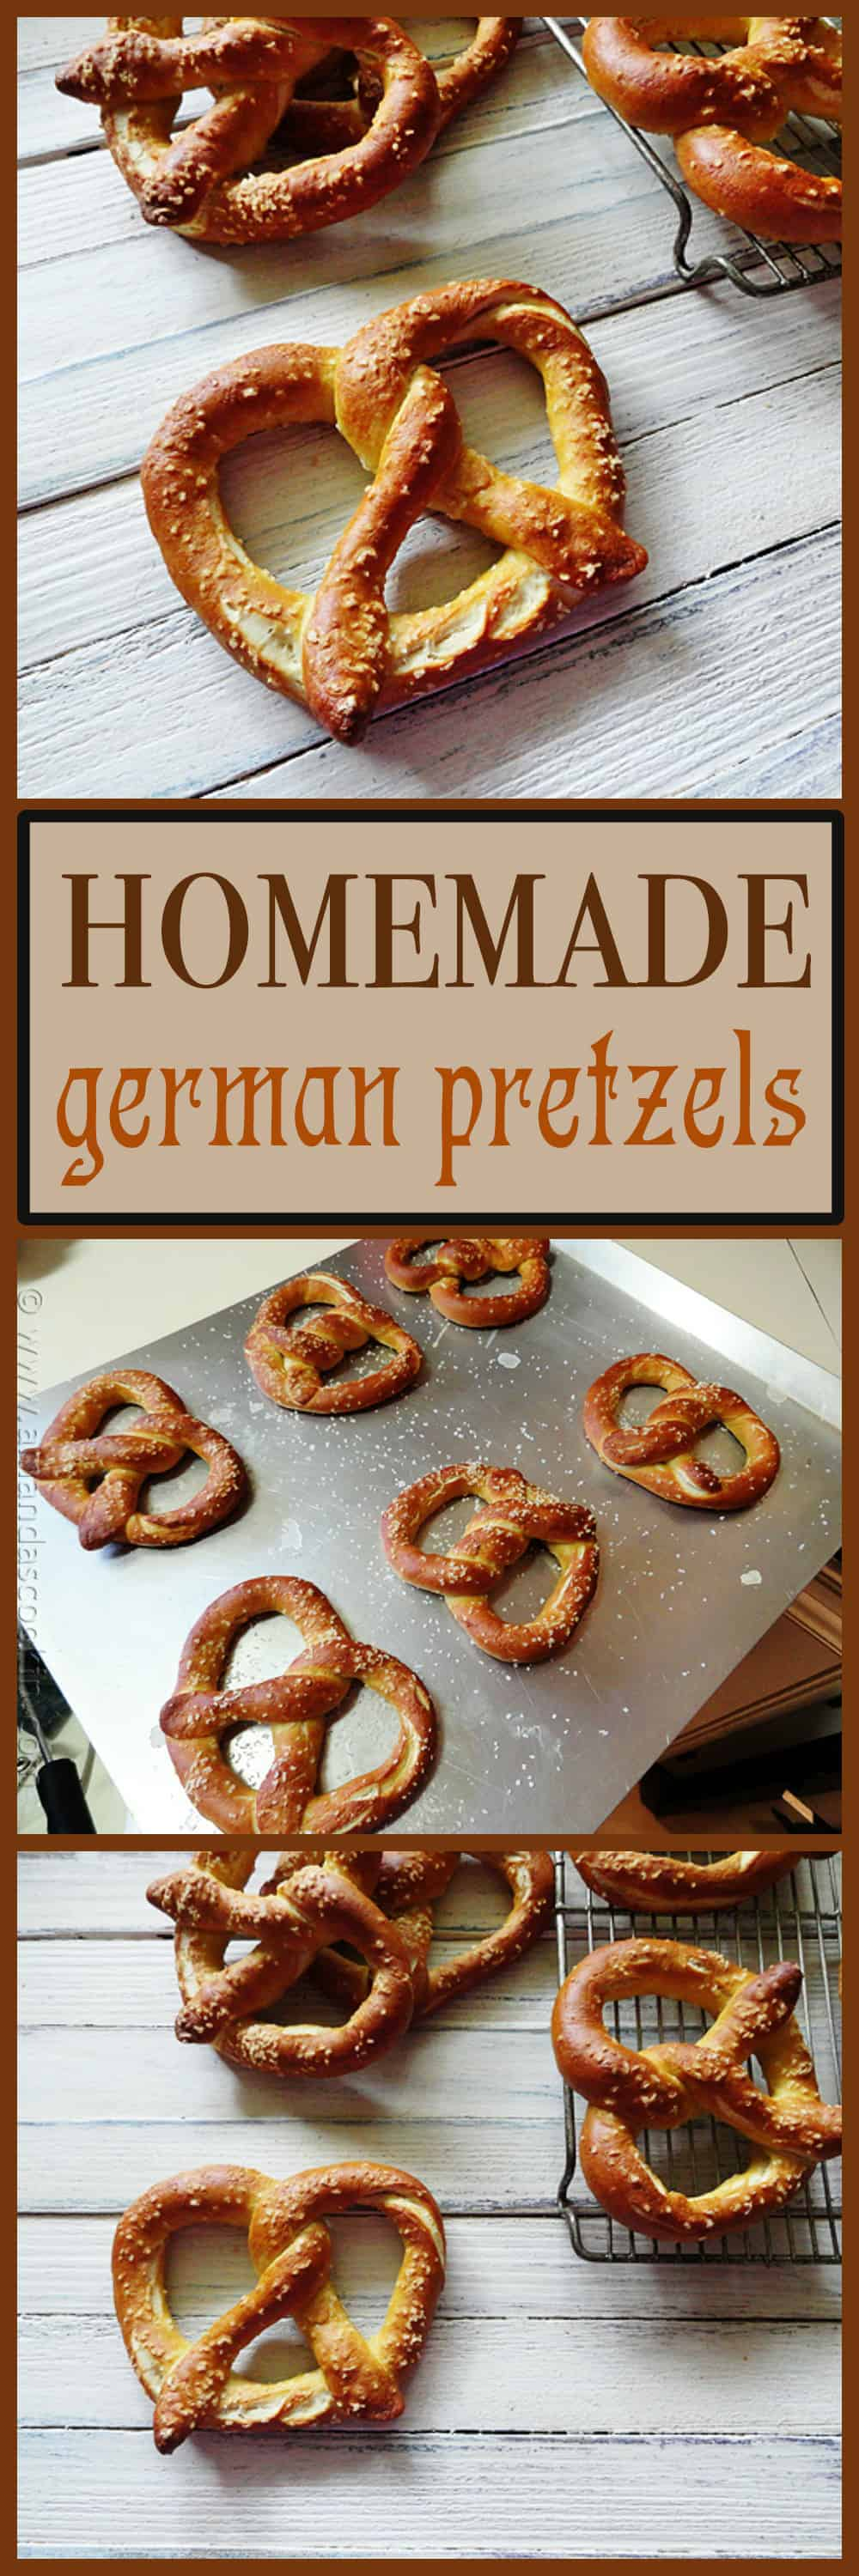 A photo of homemade German pretzels on a baking sheet.